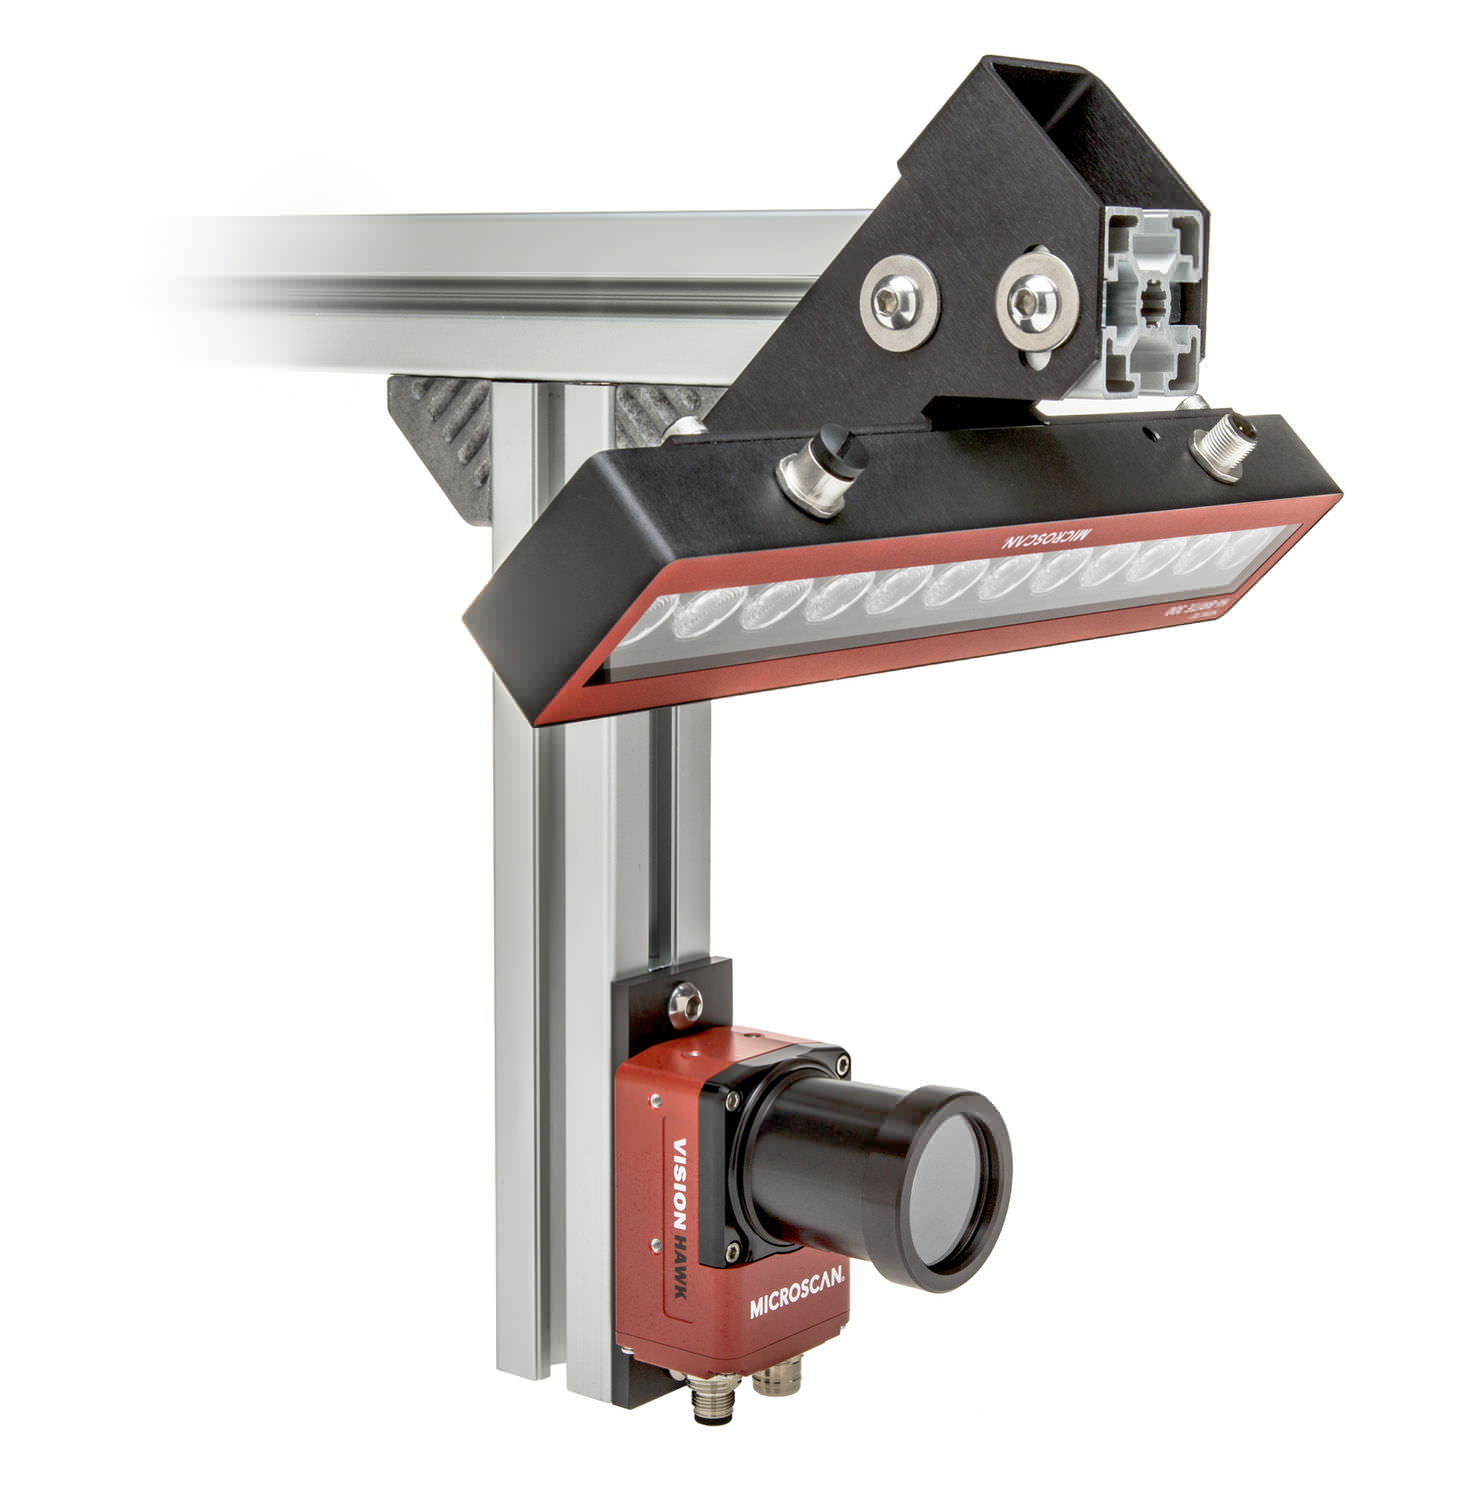 Barcode Verification vision system with camera for inspection tasks - large